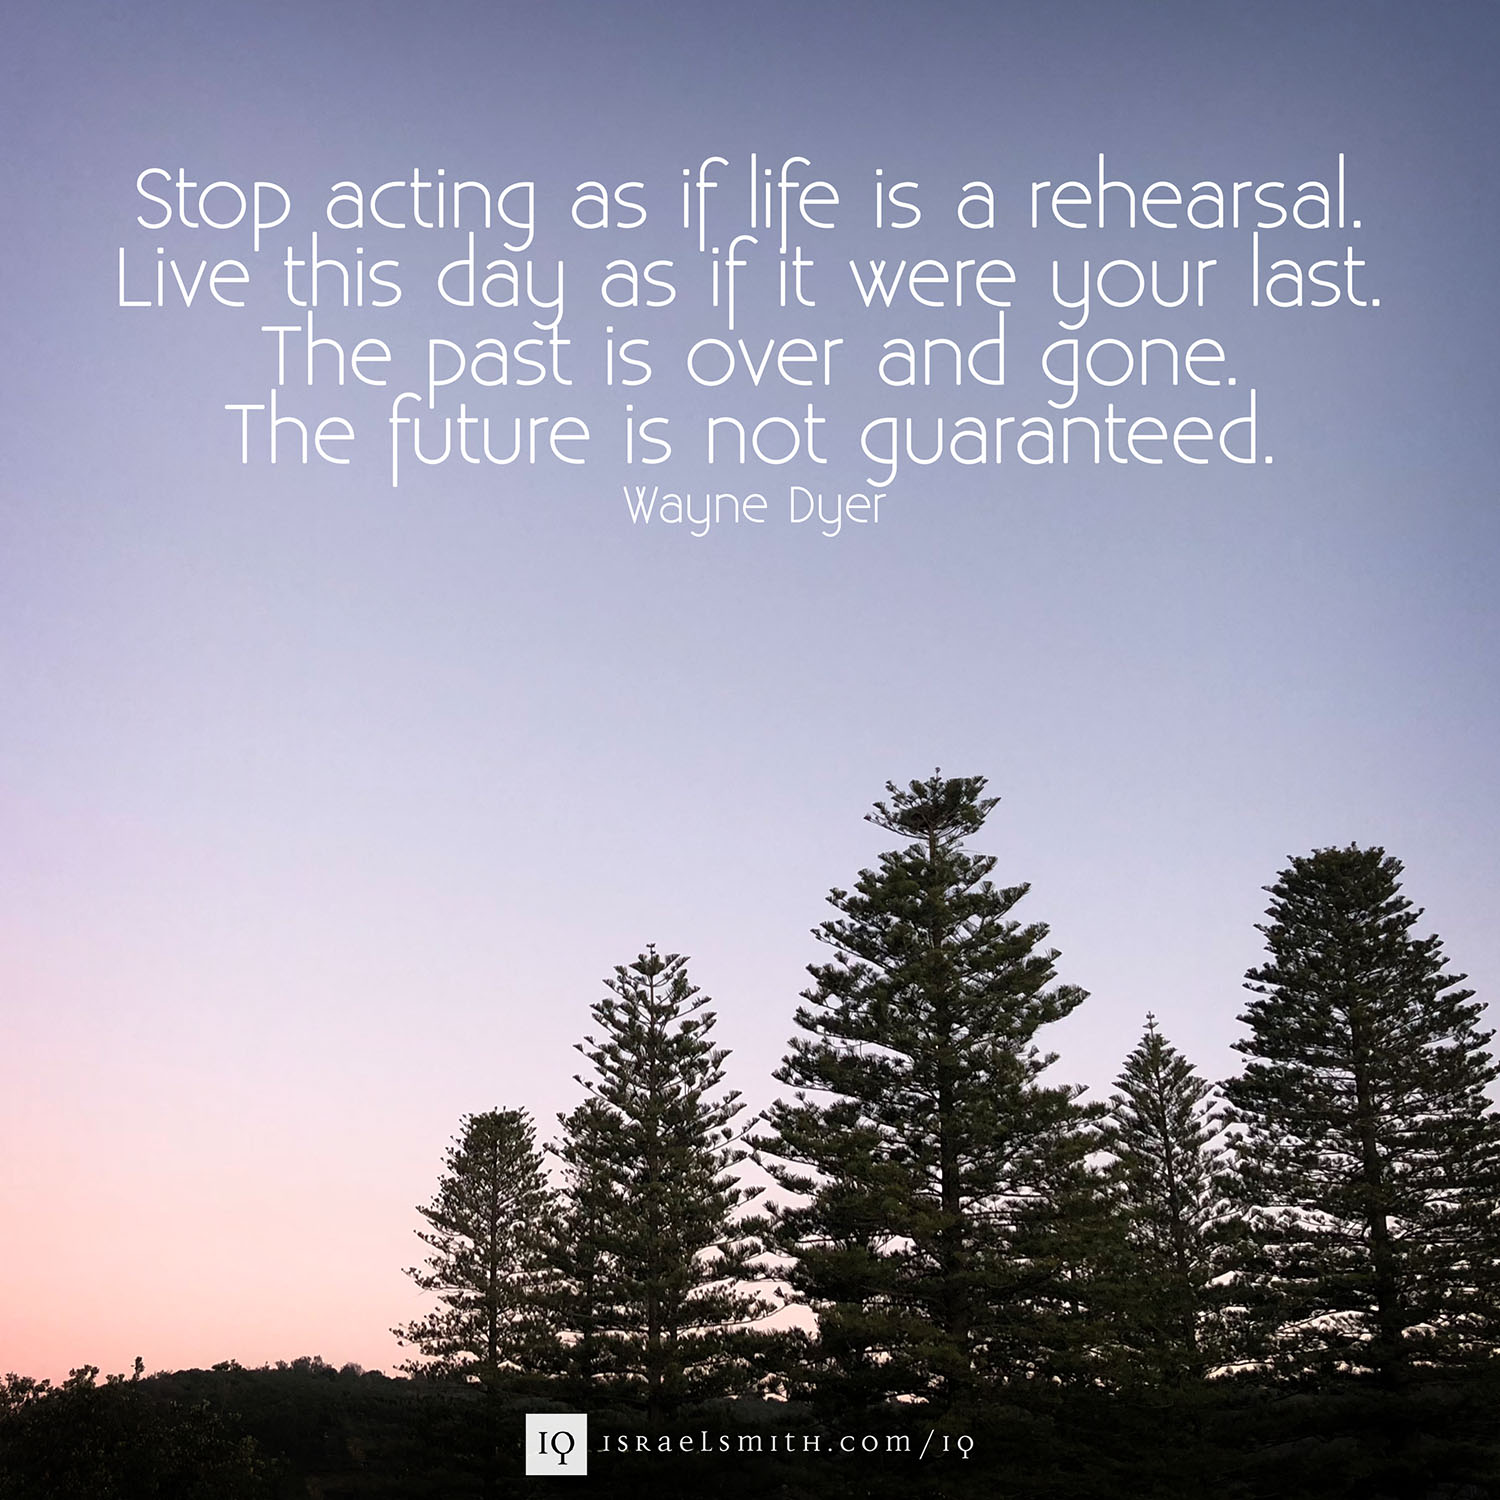 Stop acting as if life is a rehearsal